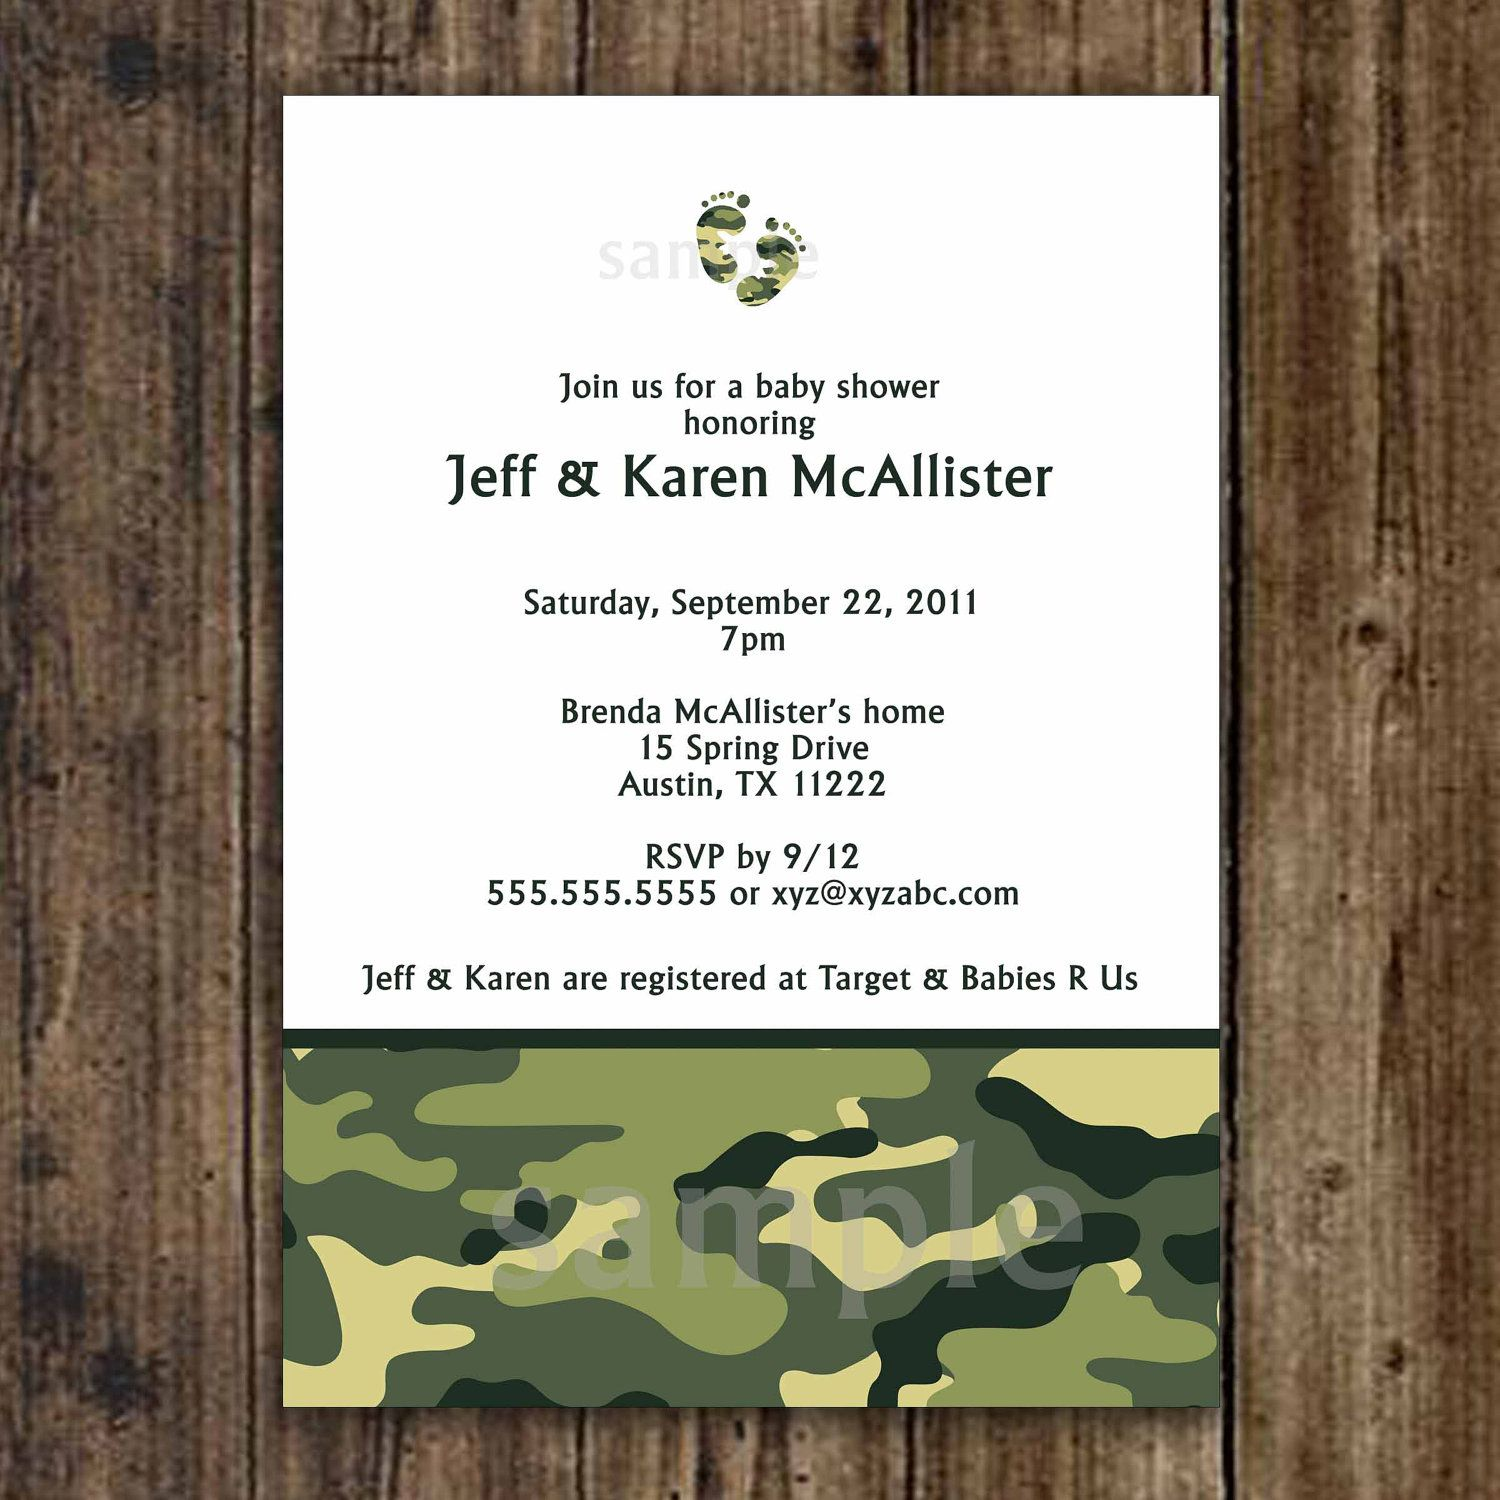 Camo baby shower invitation army green by lemontreecards 1250 camo baby shower invitation army green by lemontreecards 1250 filmwisefo Images